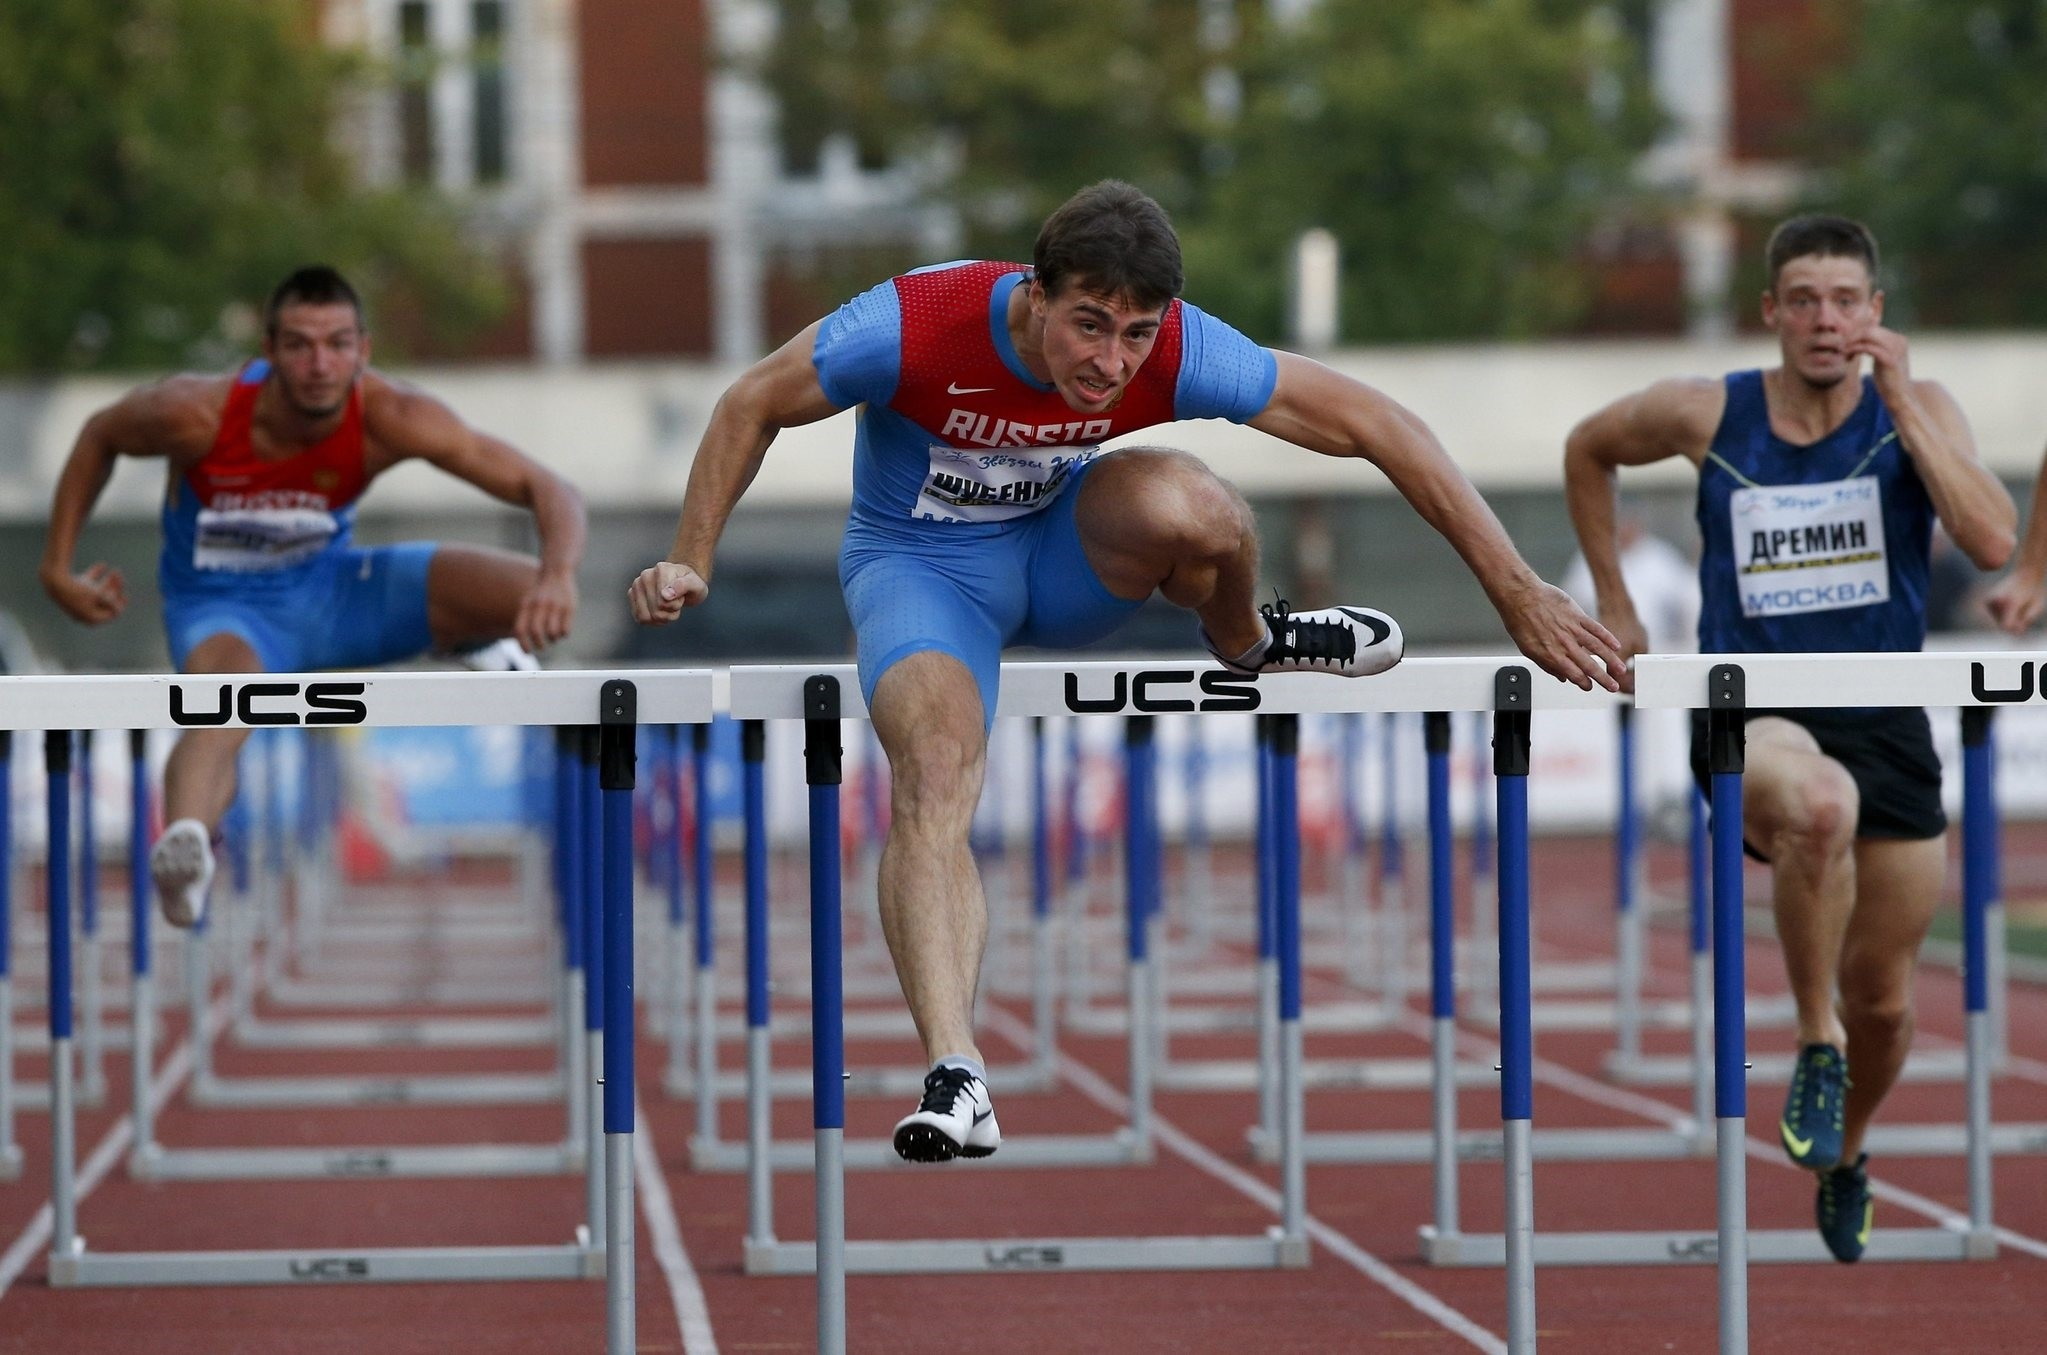 Sergei Shubenkov, center, competes during the Russian Stars 2016 track and field competitions in Moscow, Russia. (AP Photo)